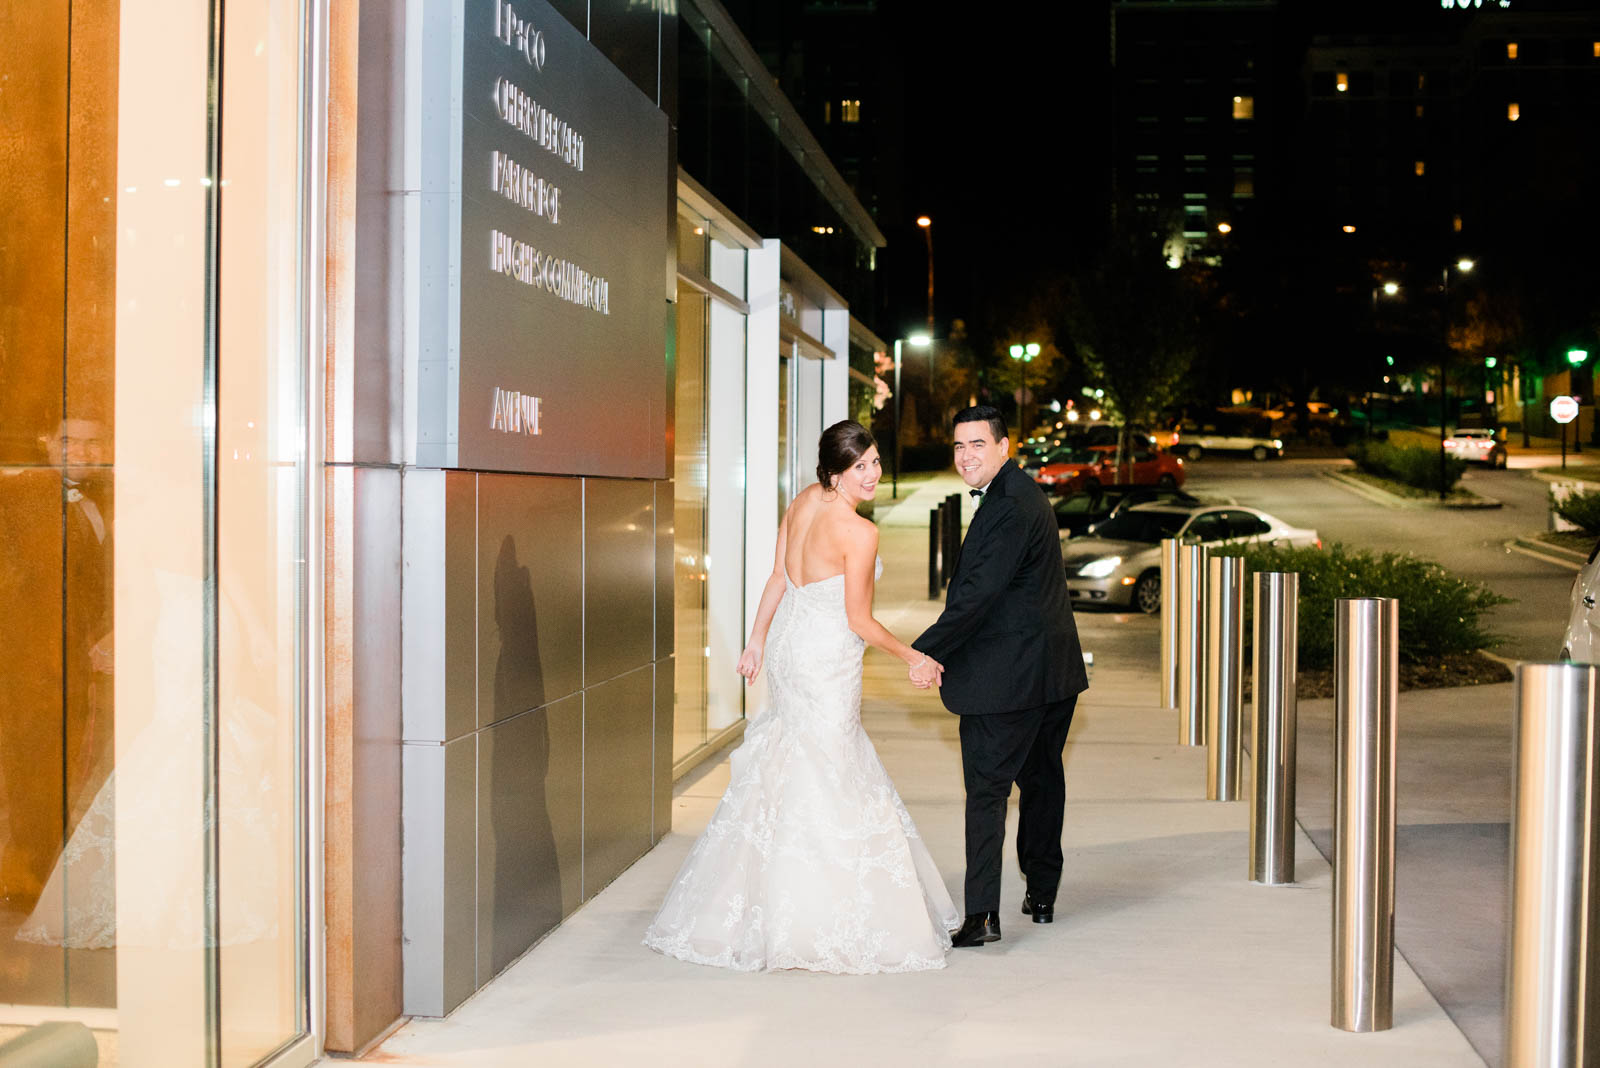 Wedding at Avenue in Greenville SC_Markie Walden Photo-92.jpg